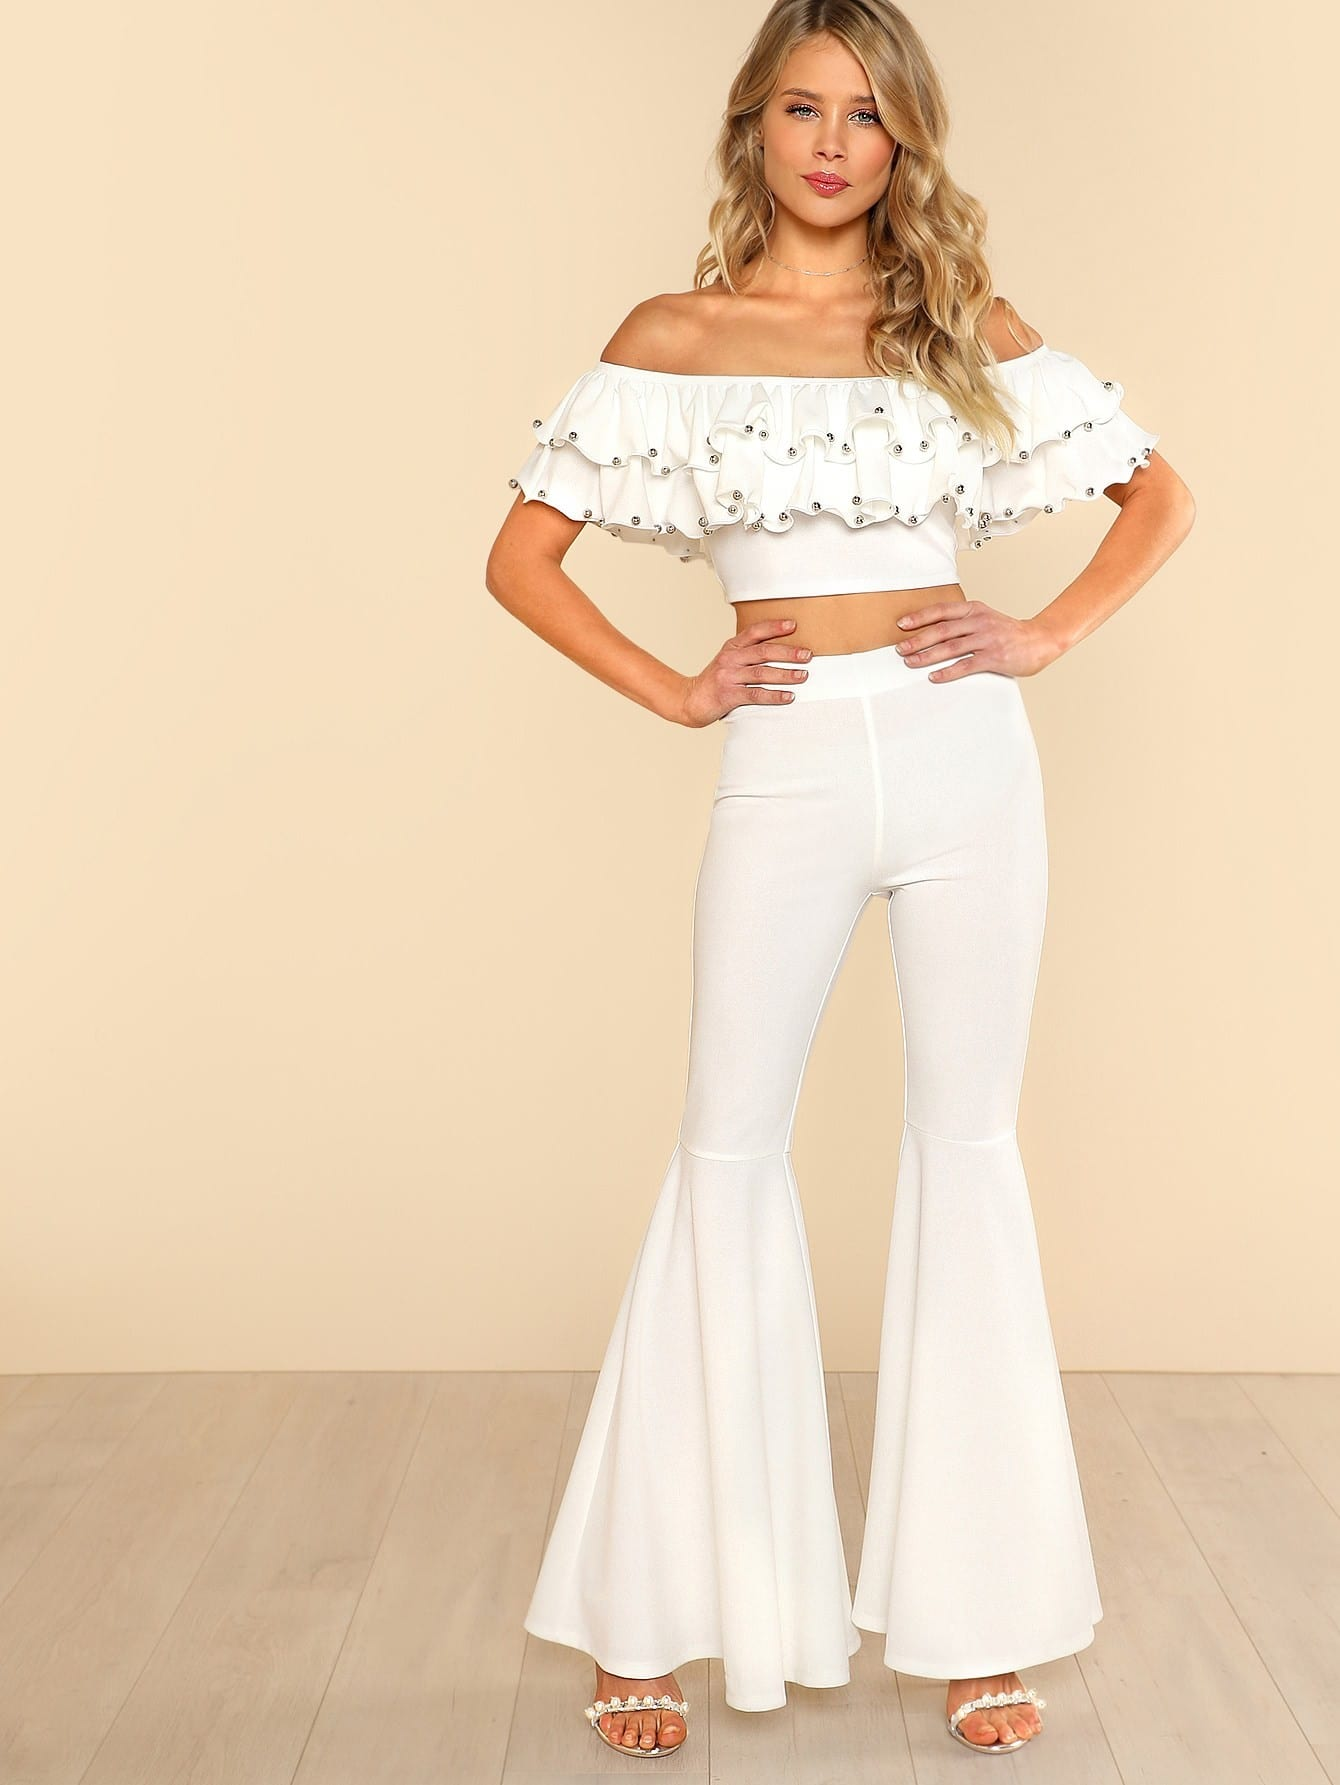 Beading Detail Layered Bardot Top & Pants Set embroidered tape detail beading trim bardot top